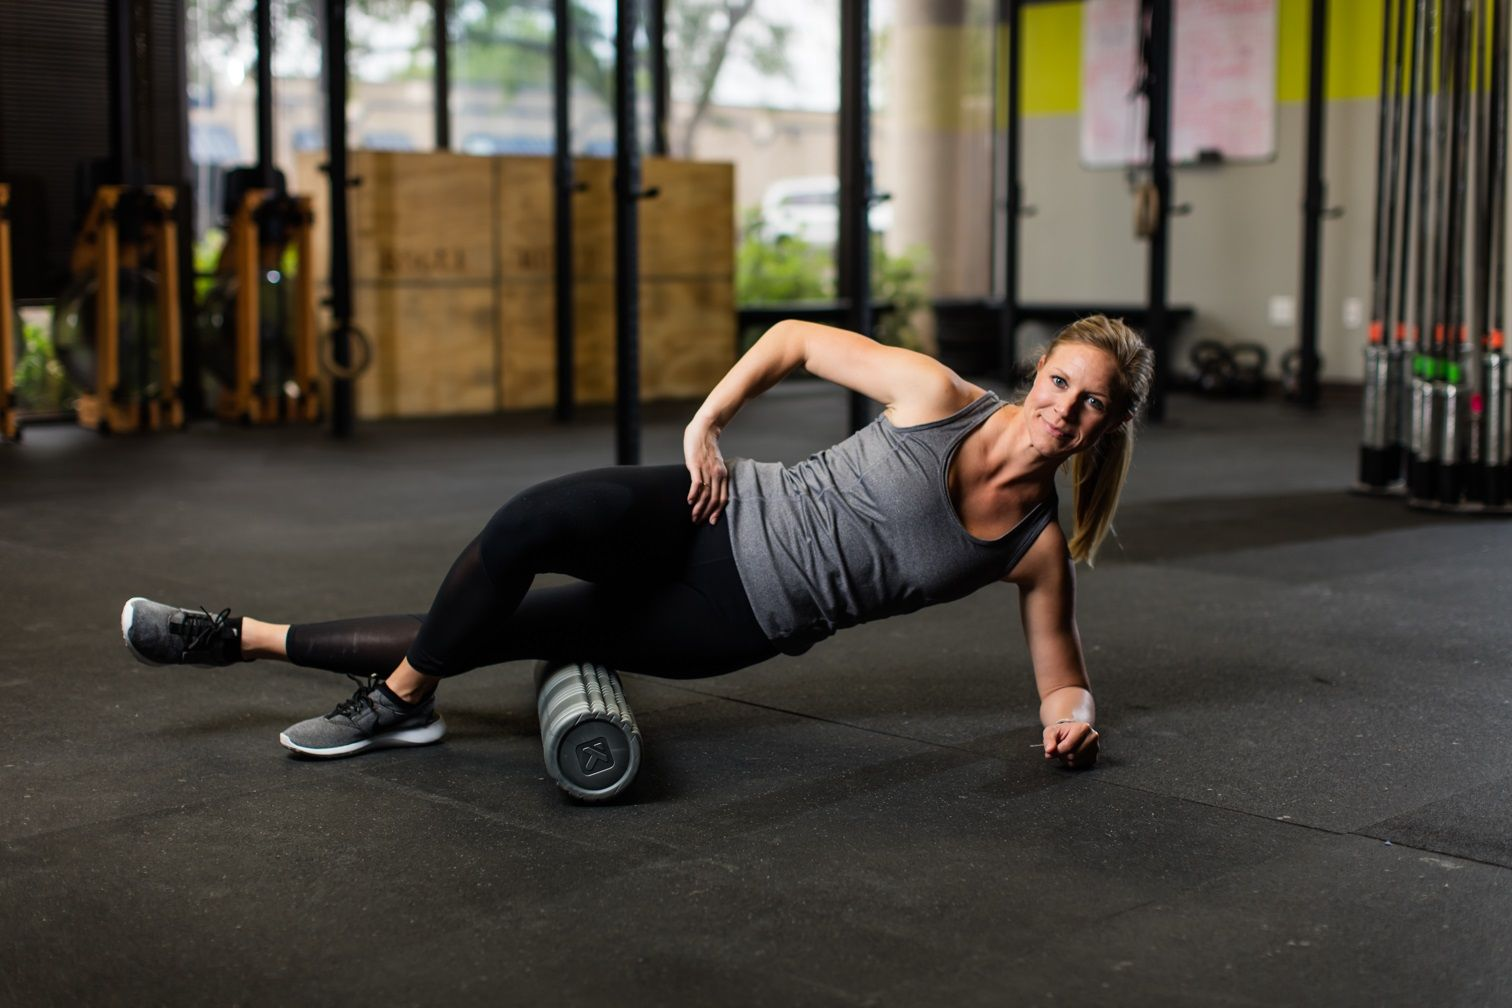 Foam Rolling A Form Of Self Myofascial Release Smr Hit The Mainstream Almost 15 Years Ago And Is Continuing To I Myofascial Release Foam Rolling Myofascial